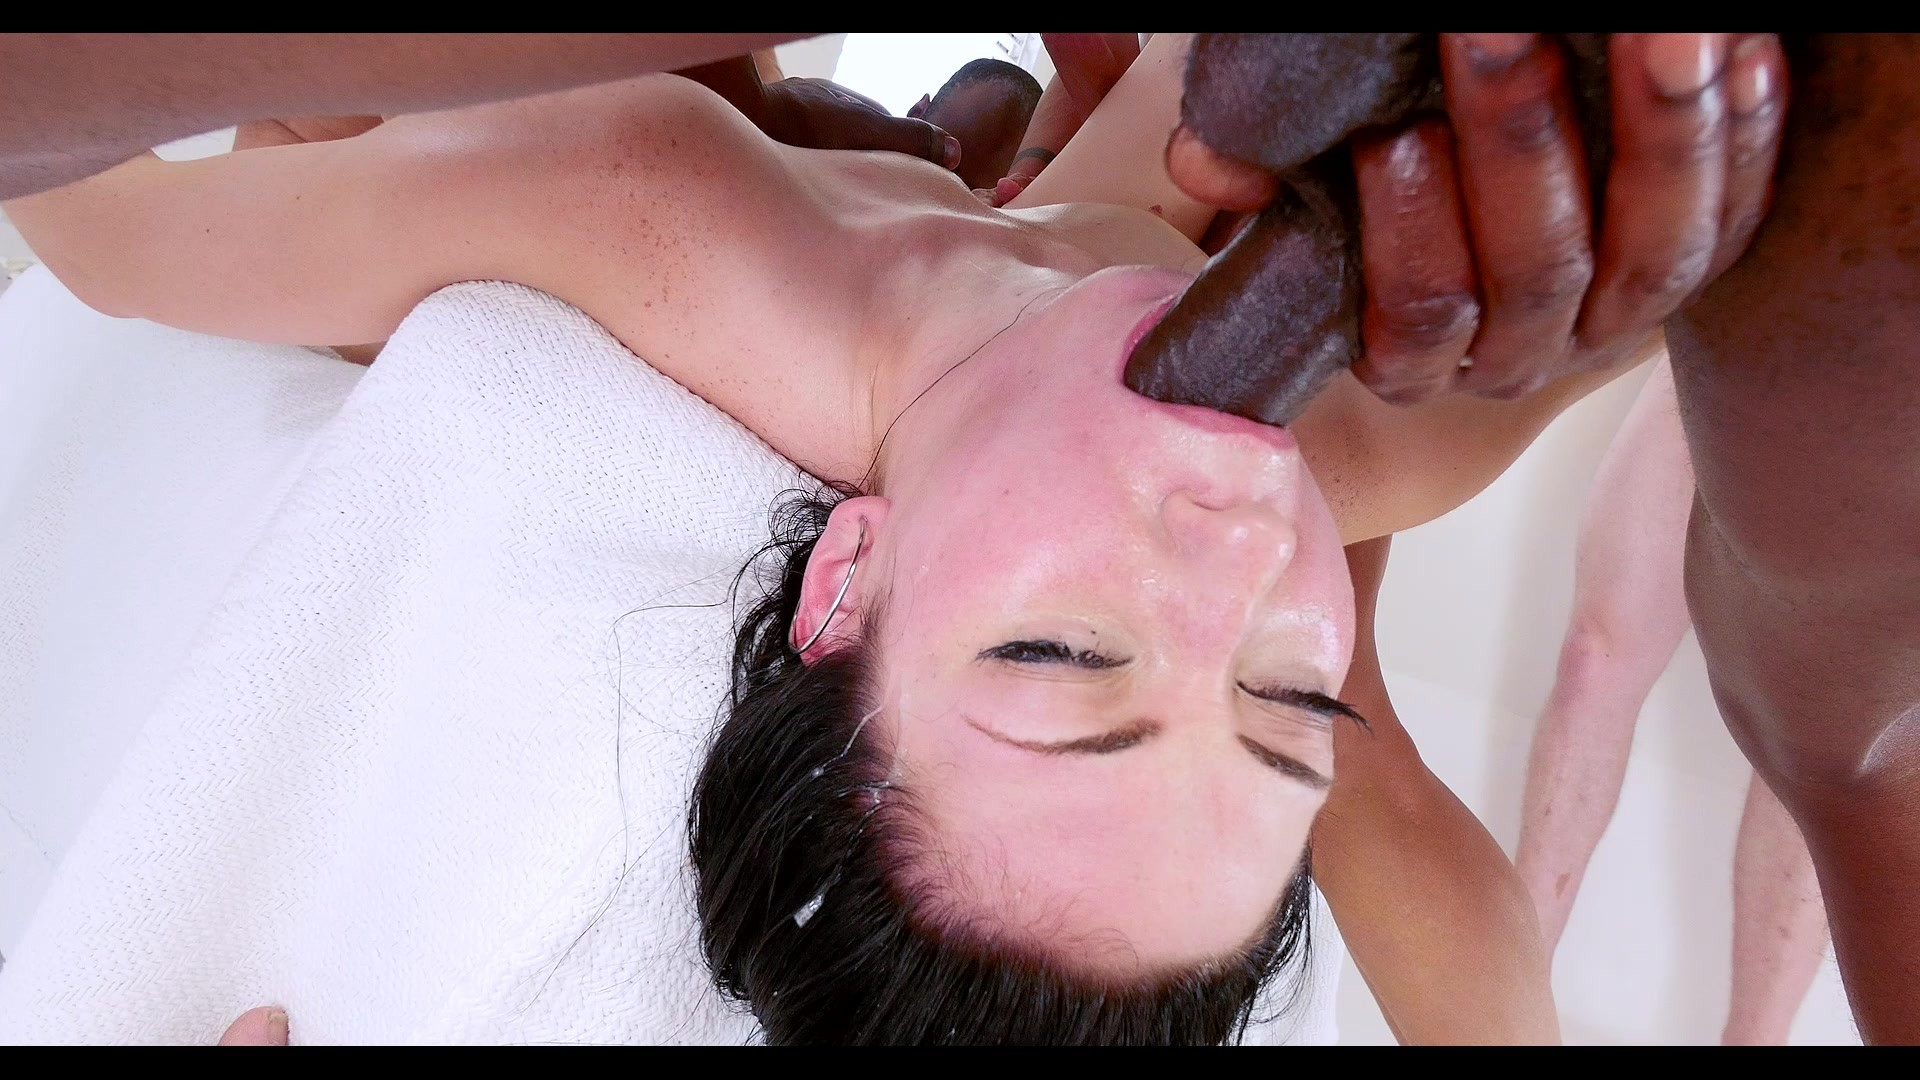 Fucked hard facial pictures, lube tube porno